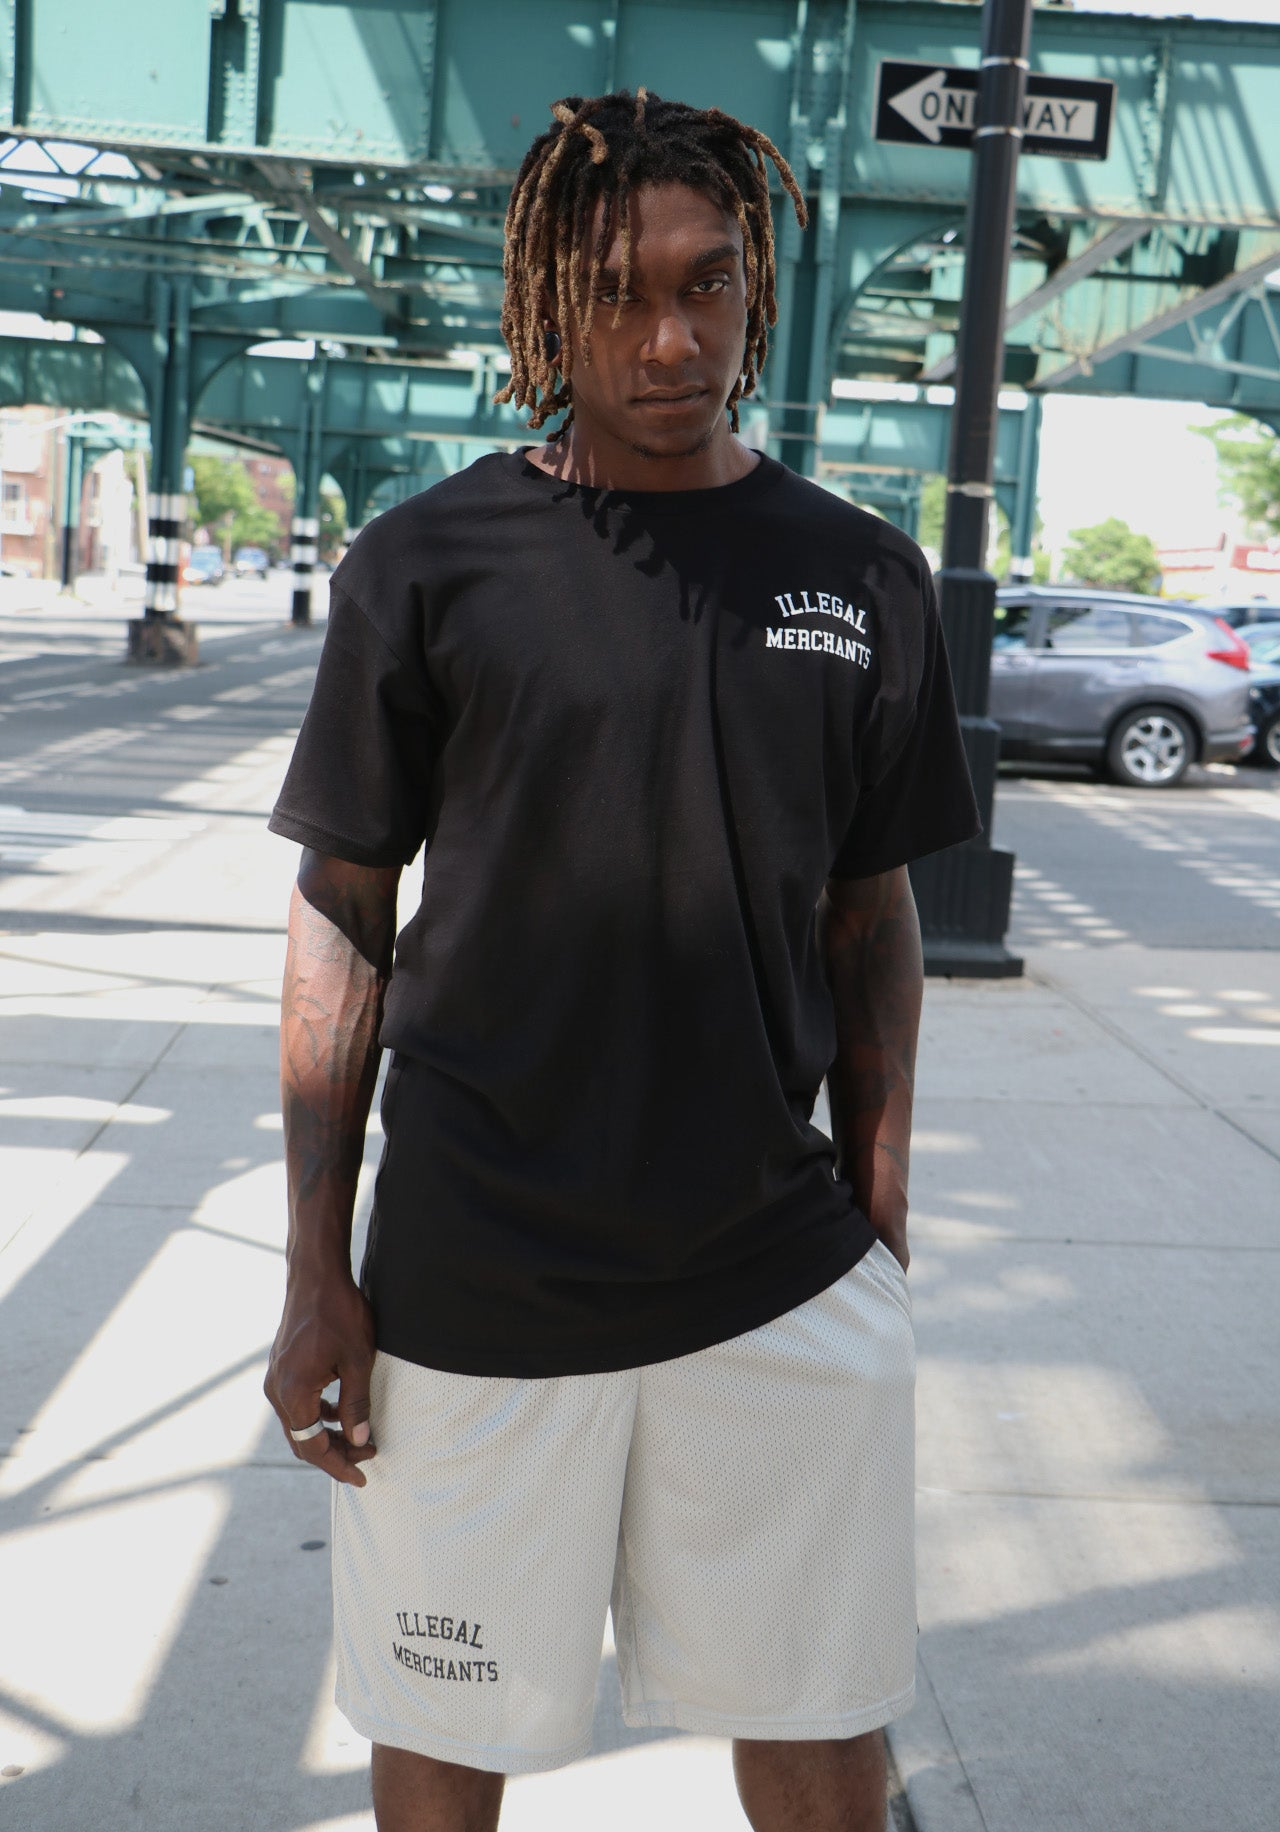 Illegal Merchants V4 New York Stussy Streetwear